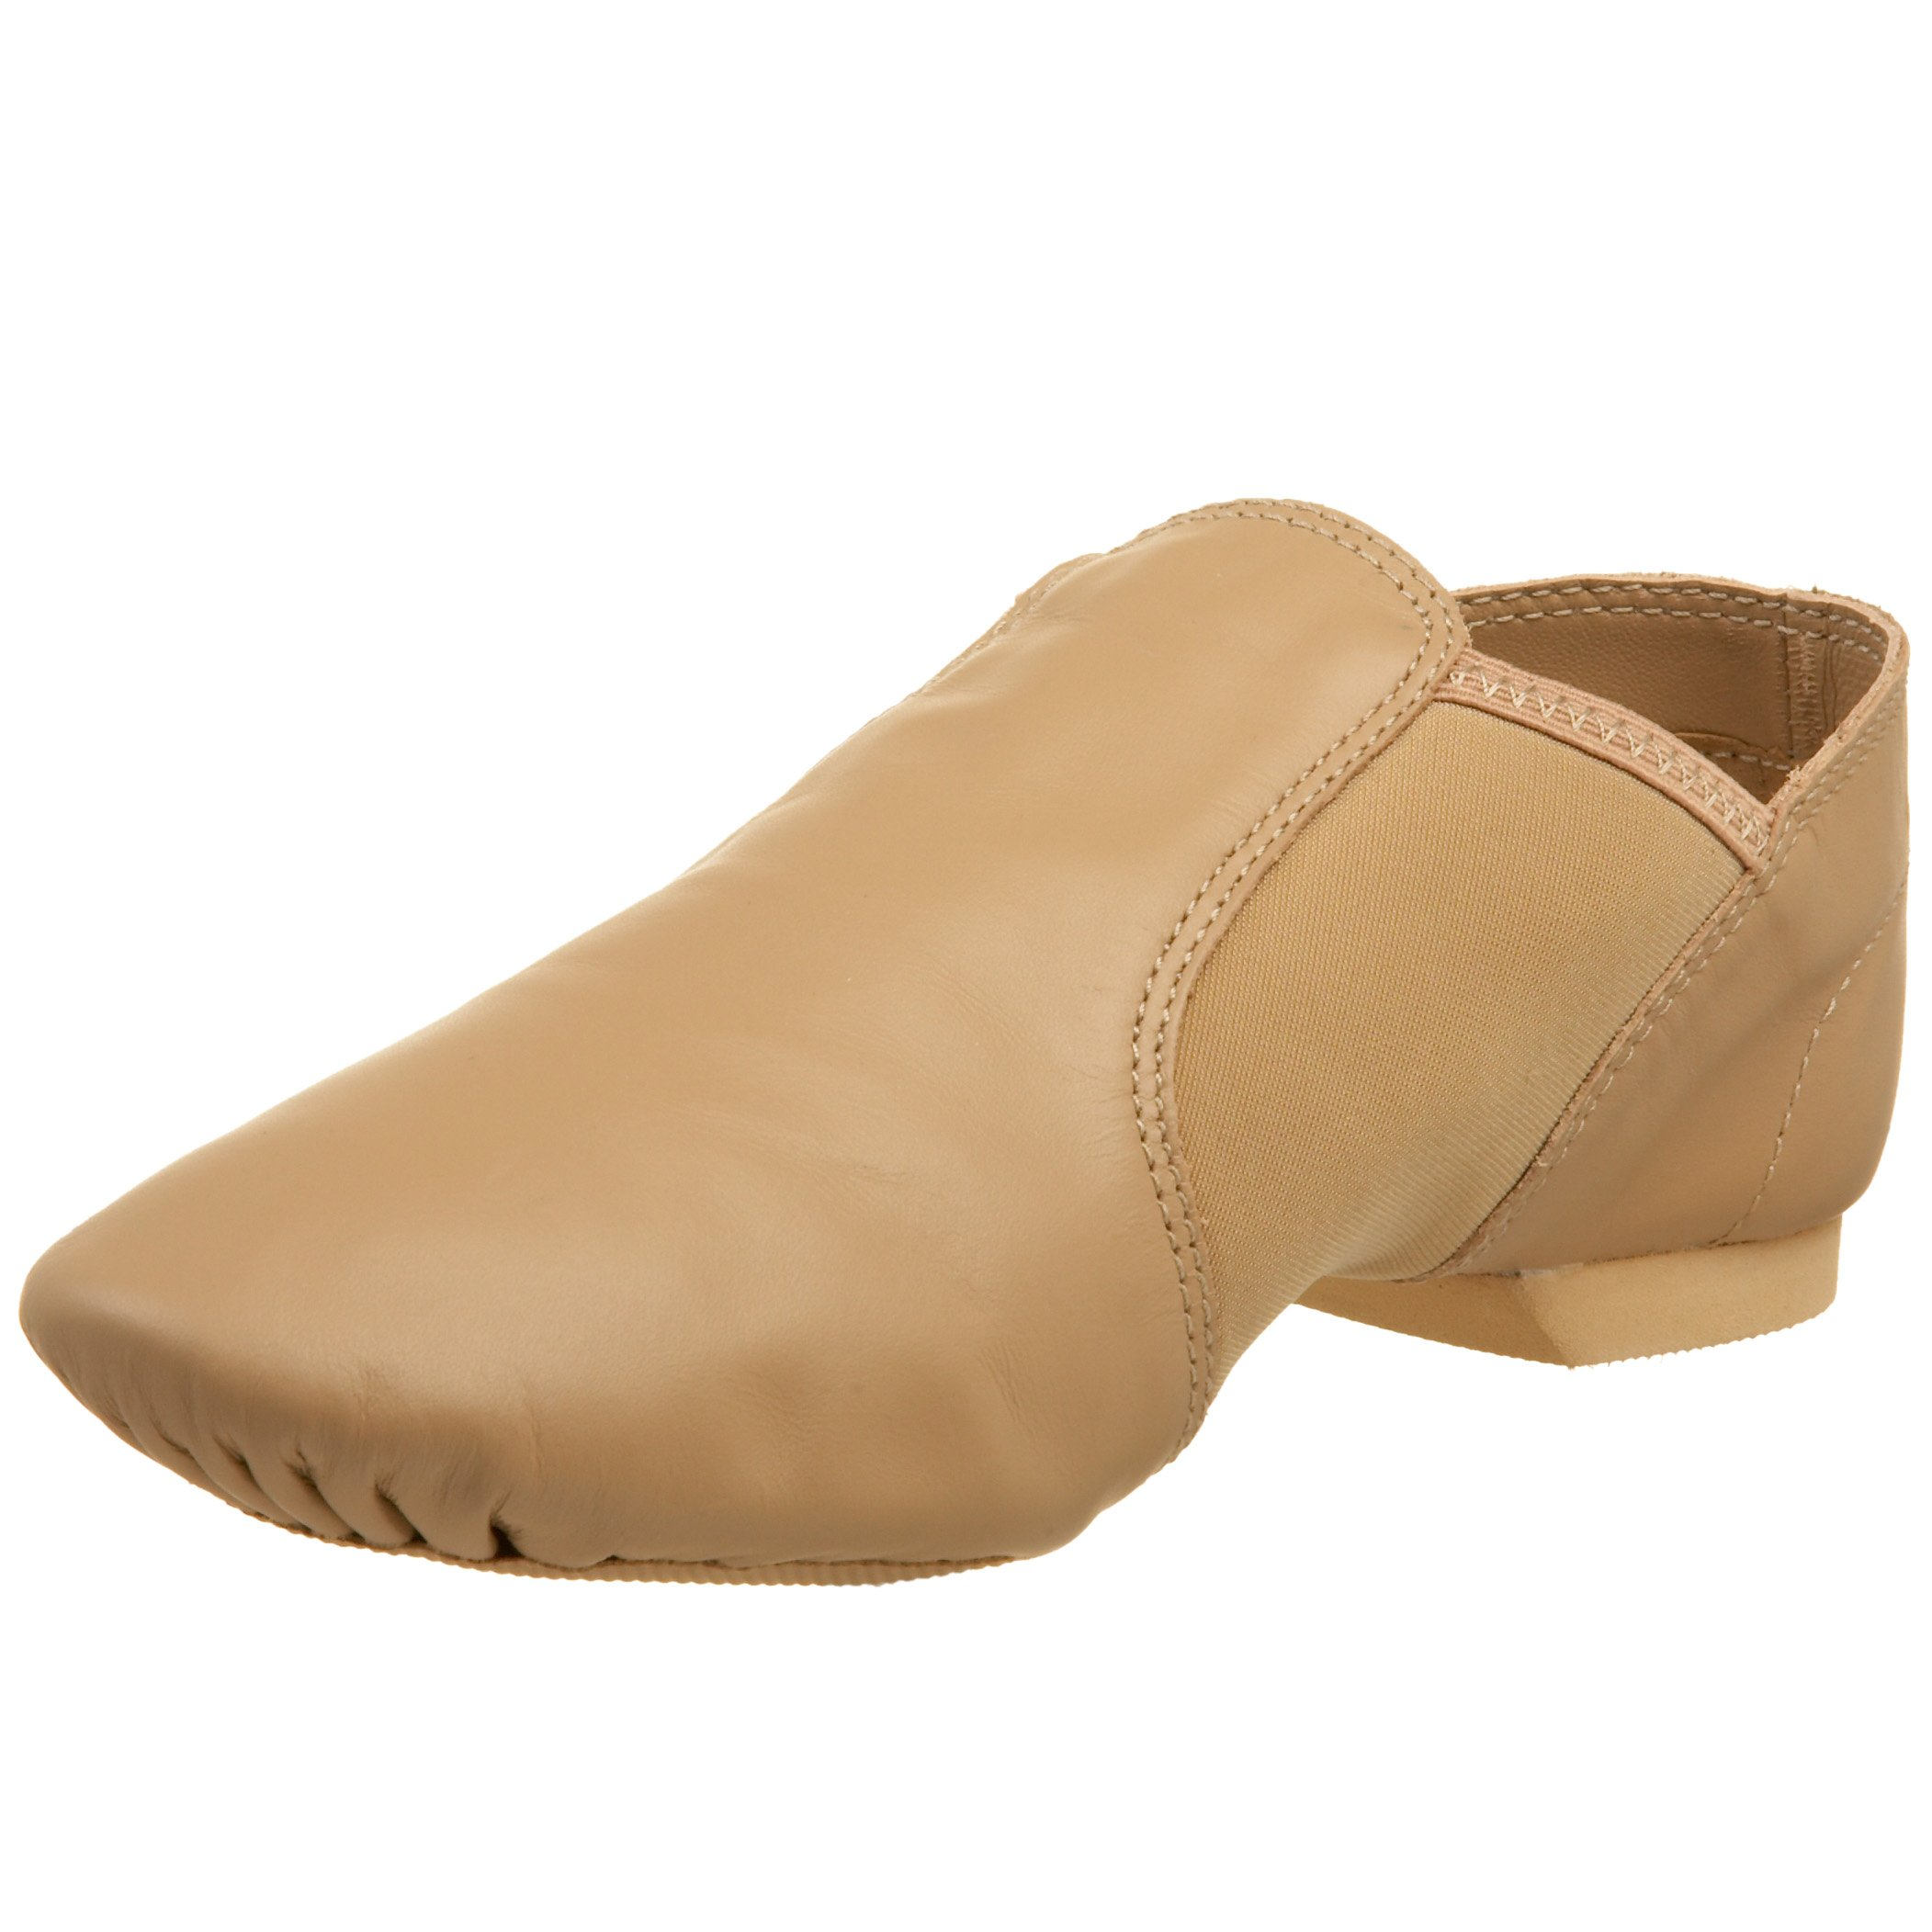 Capezio Women's Economy Jazz Slip On, Caramel, 9.5W US by Capezio